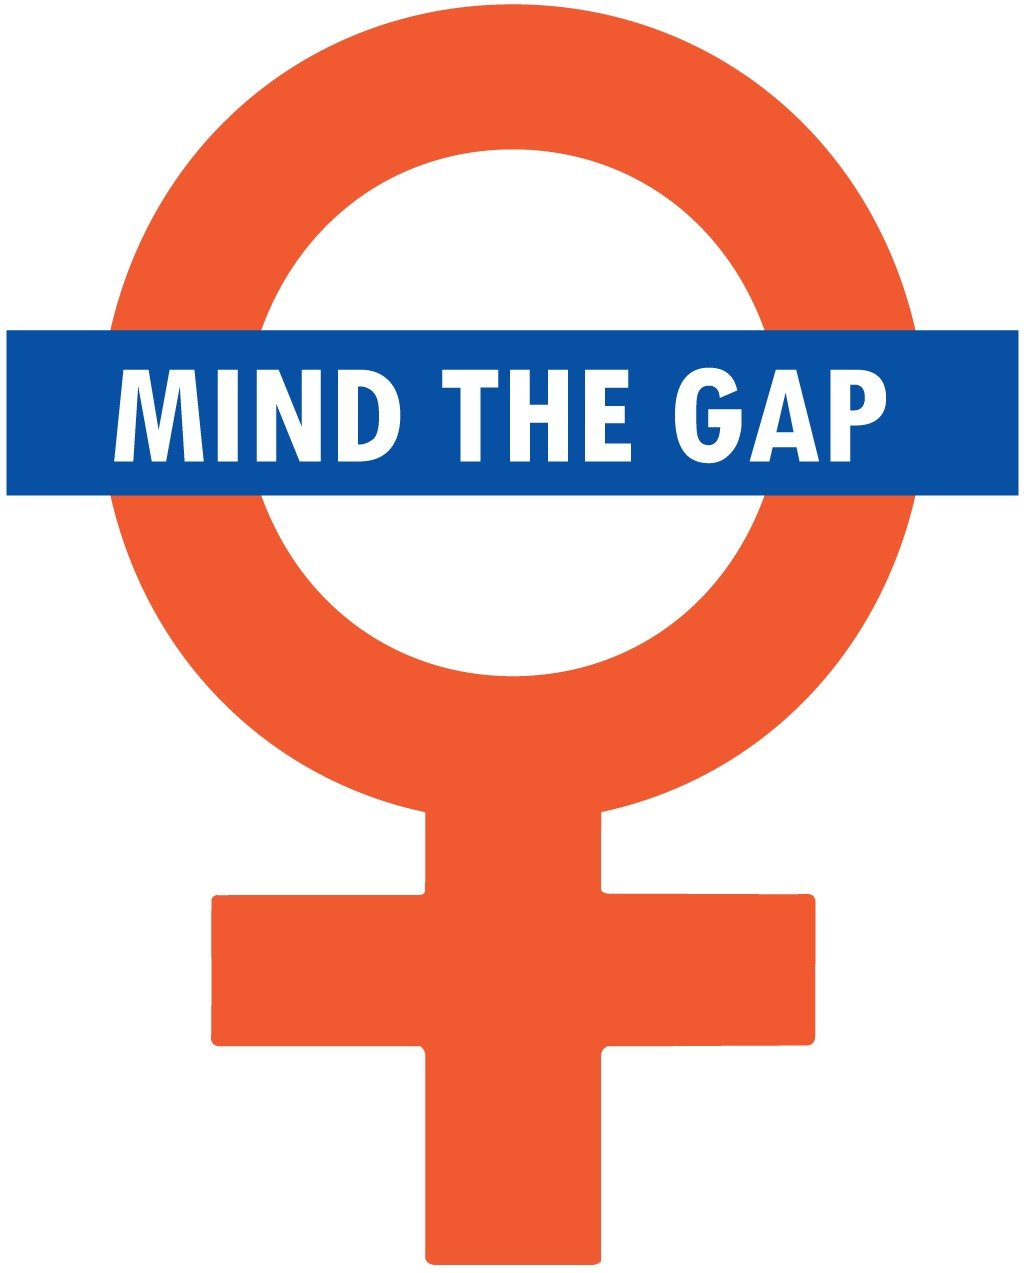 occupational gender pay gap needed